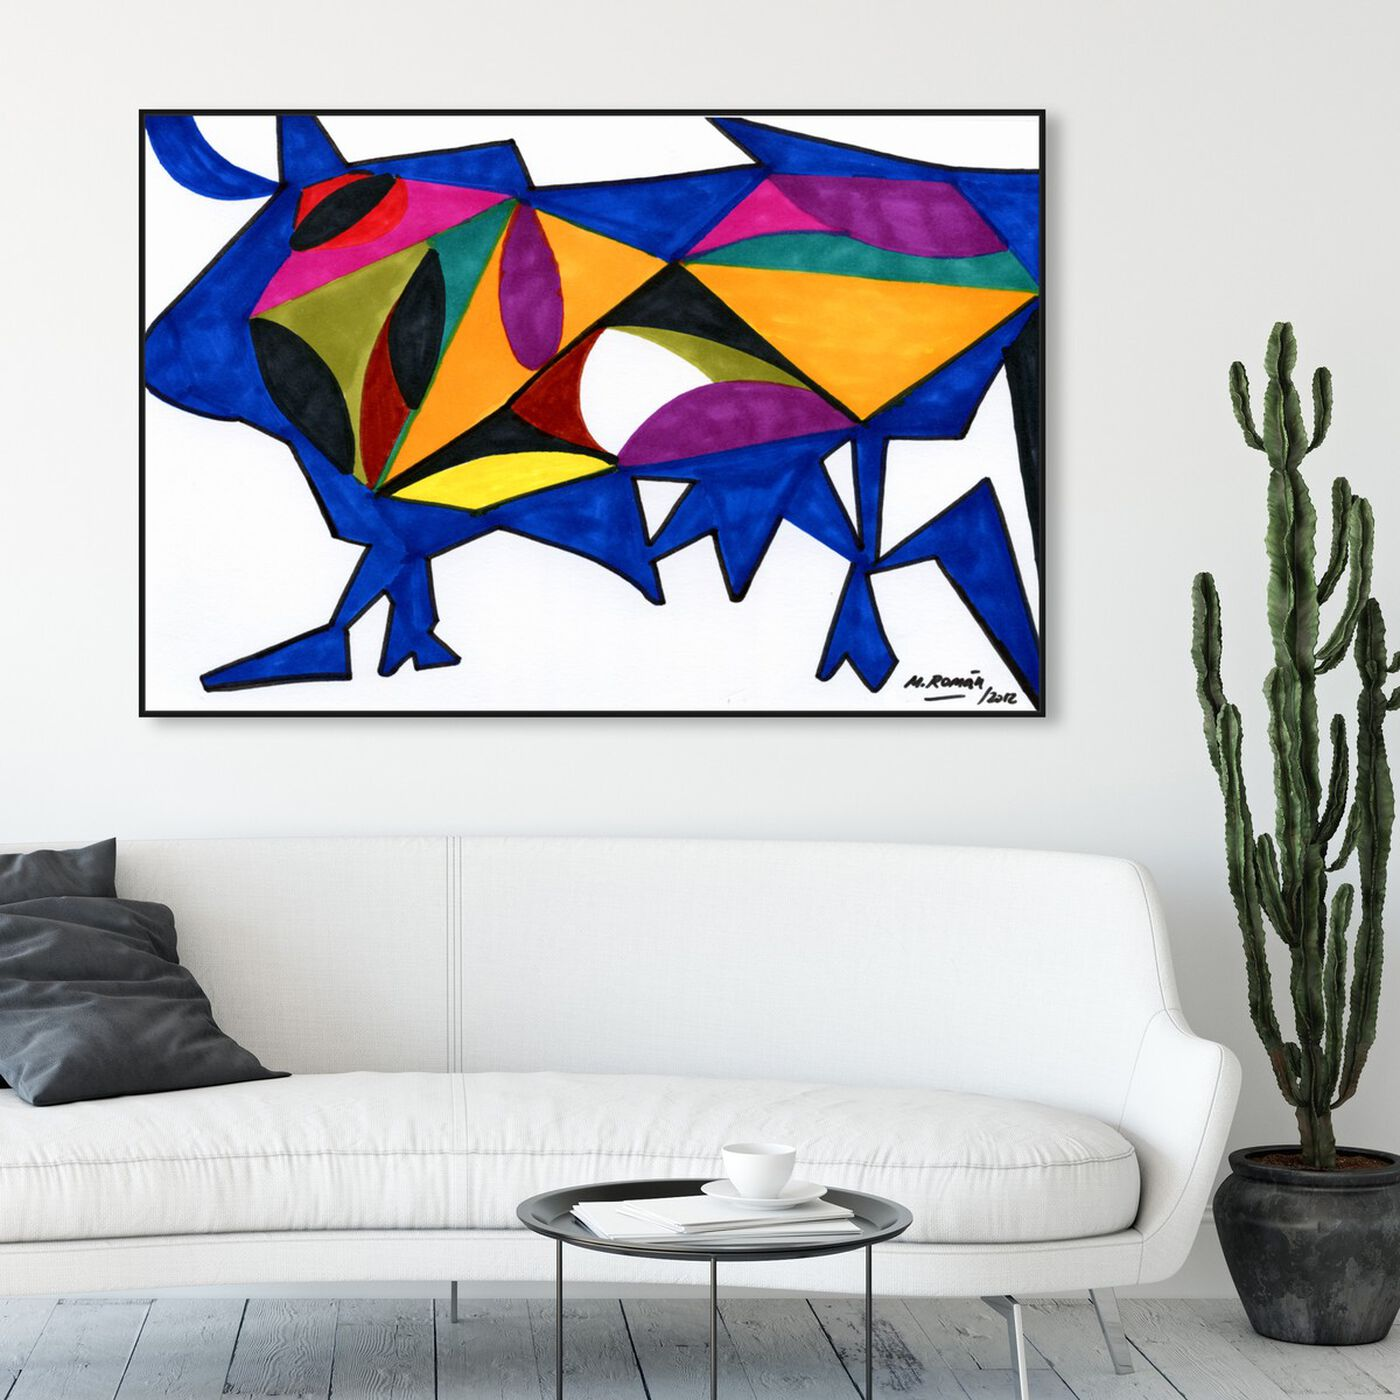 Hanging view of Bull Sunrise featuring abstract and shapes art.